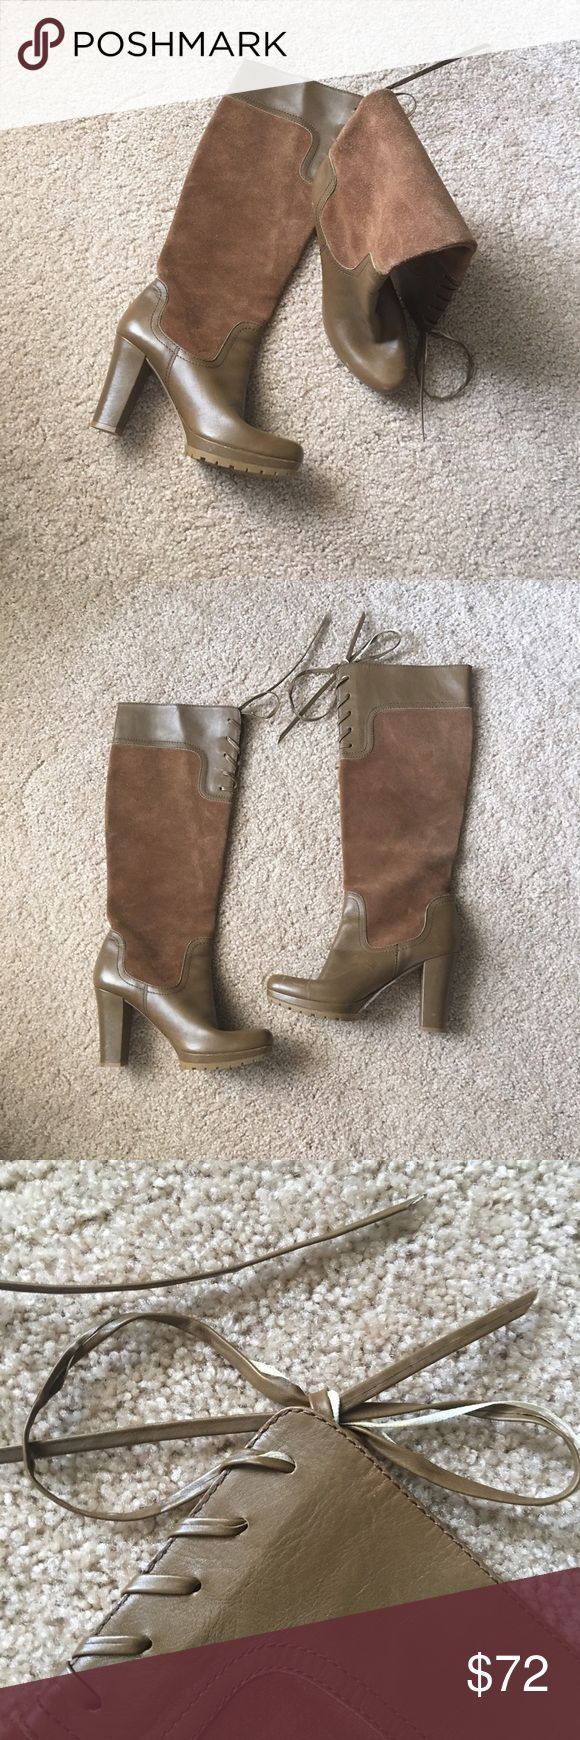 Circa Joan & David tan boots sz: 6 Awesome pair of Joan & David boots sz: 6. Bought at a local high end boutique and forgot about them. The ties are fraying but it's not nothing to worry about really. Perfect condition as you can tell I do not think they have been worn previously 💖 Joan & David Shoes Lace Up Boots